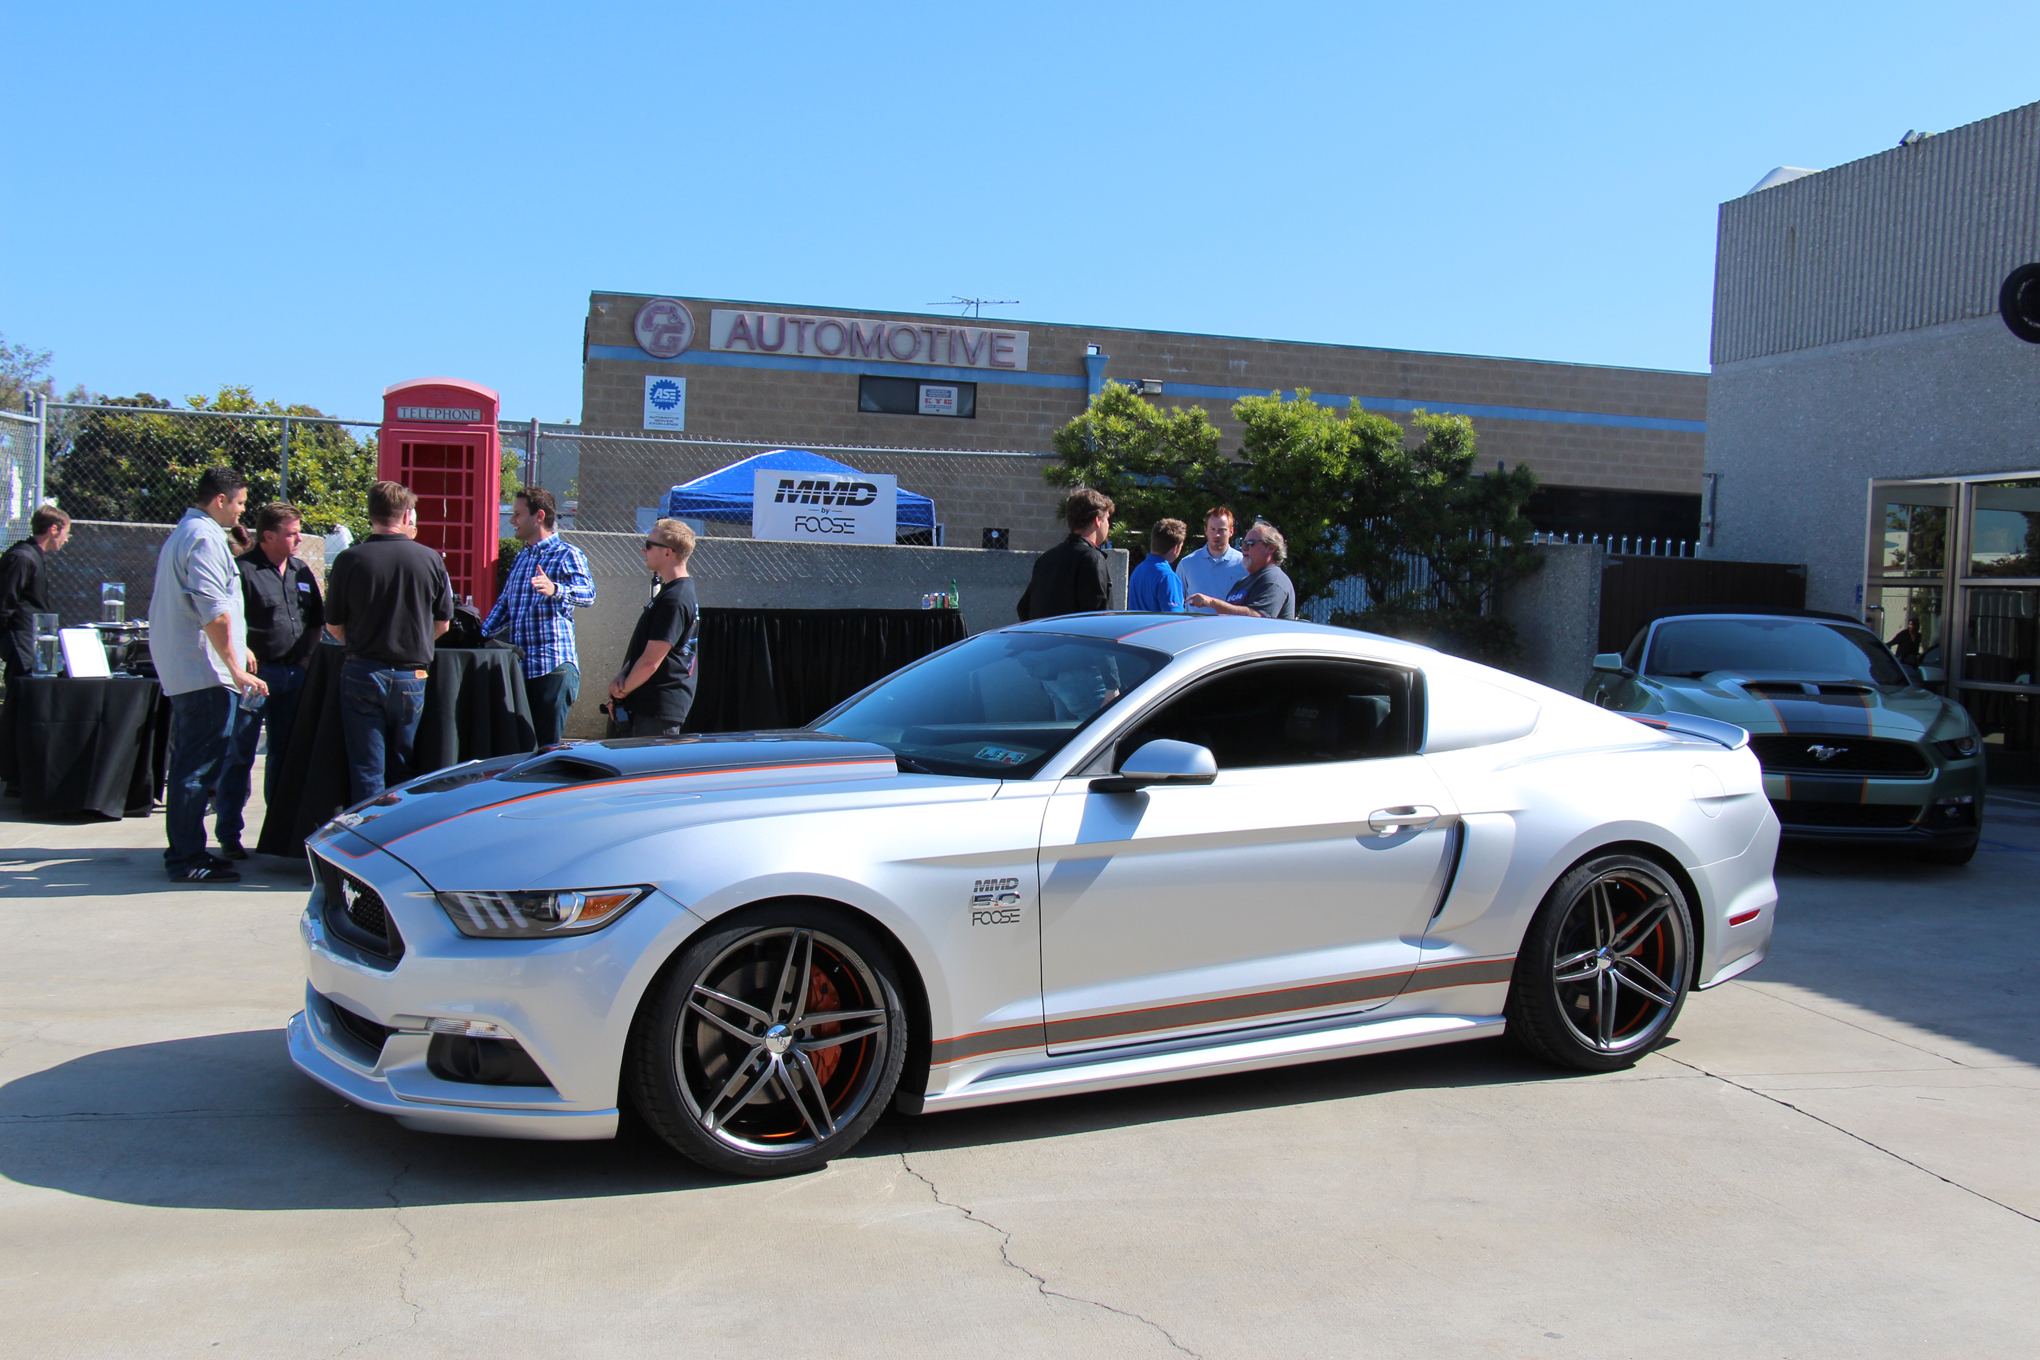 We drive the mmd by foose 810 hp 2015 ford mustang gt motortrend